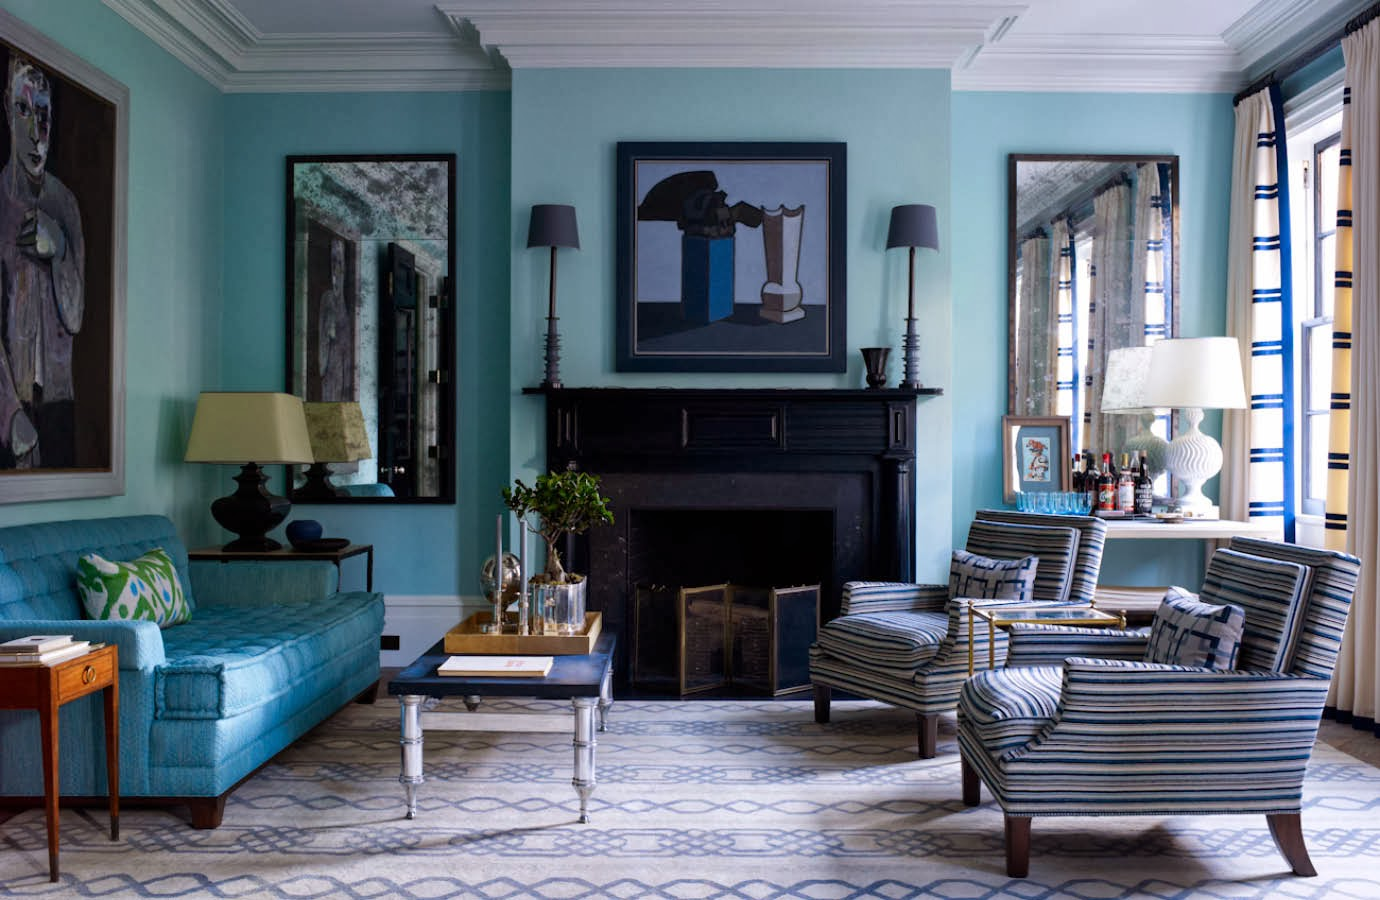 The Texture Of Teal And Turquoise A Bold And Beautiful